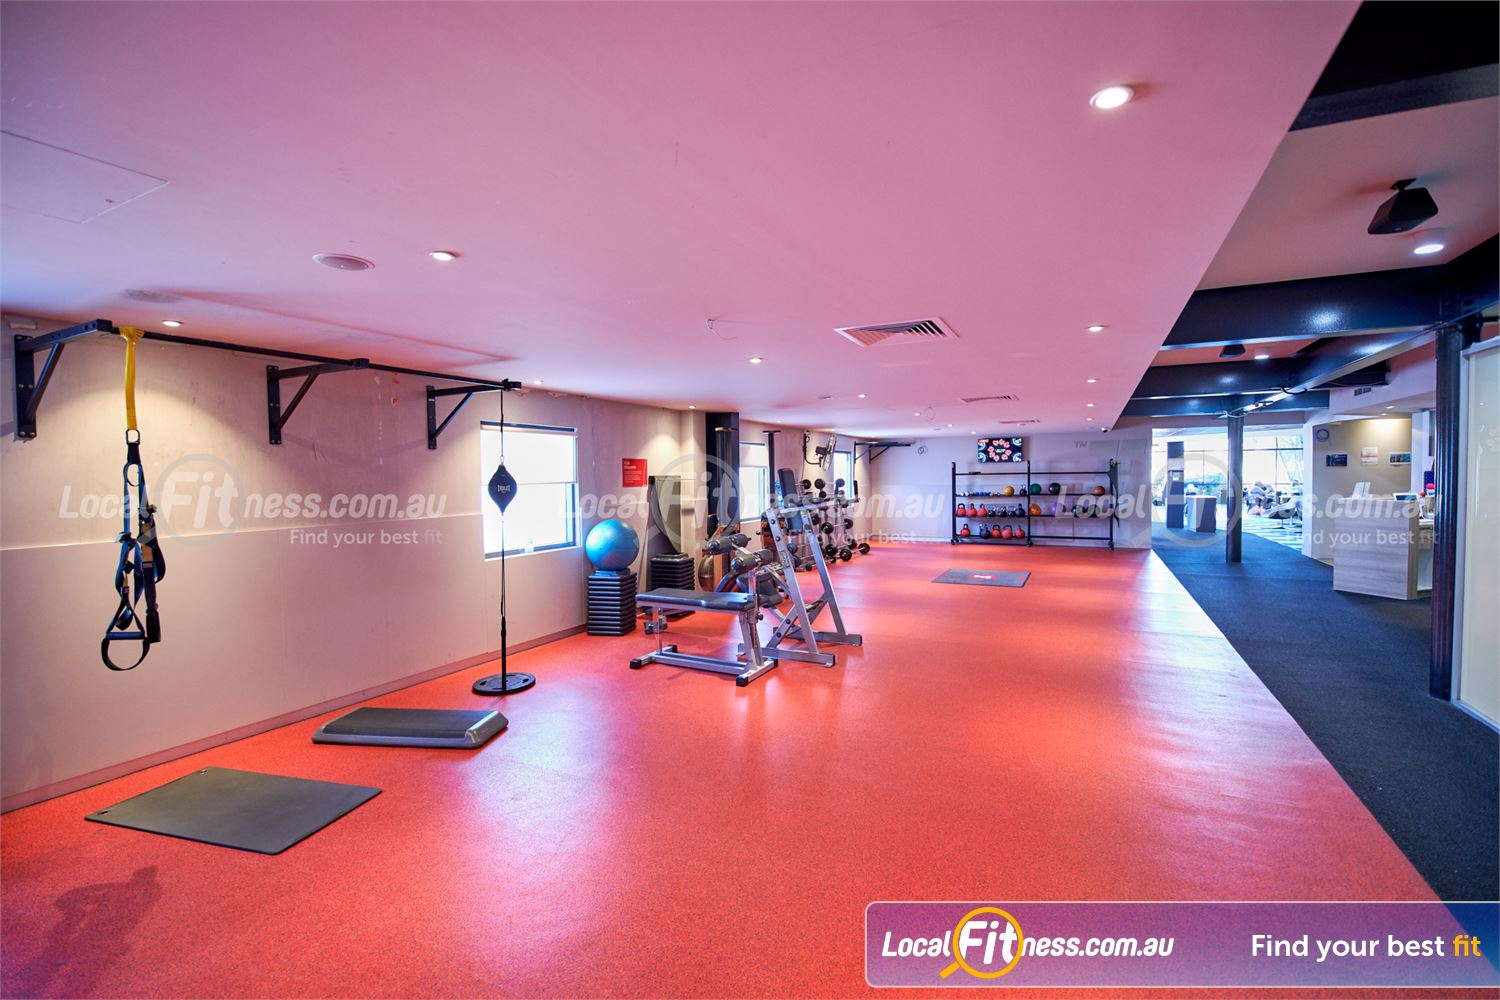 Fitness First Bayside Highett Freestyle training area with TRX, kettlebells, floor to ceiling balls and more.